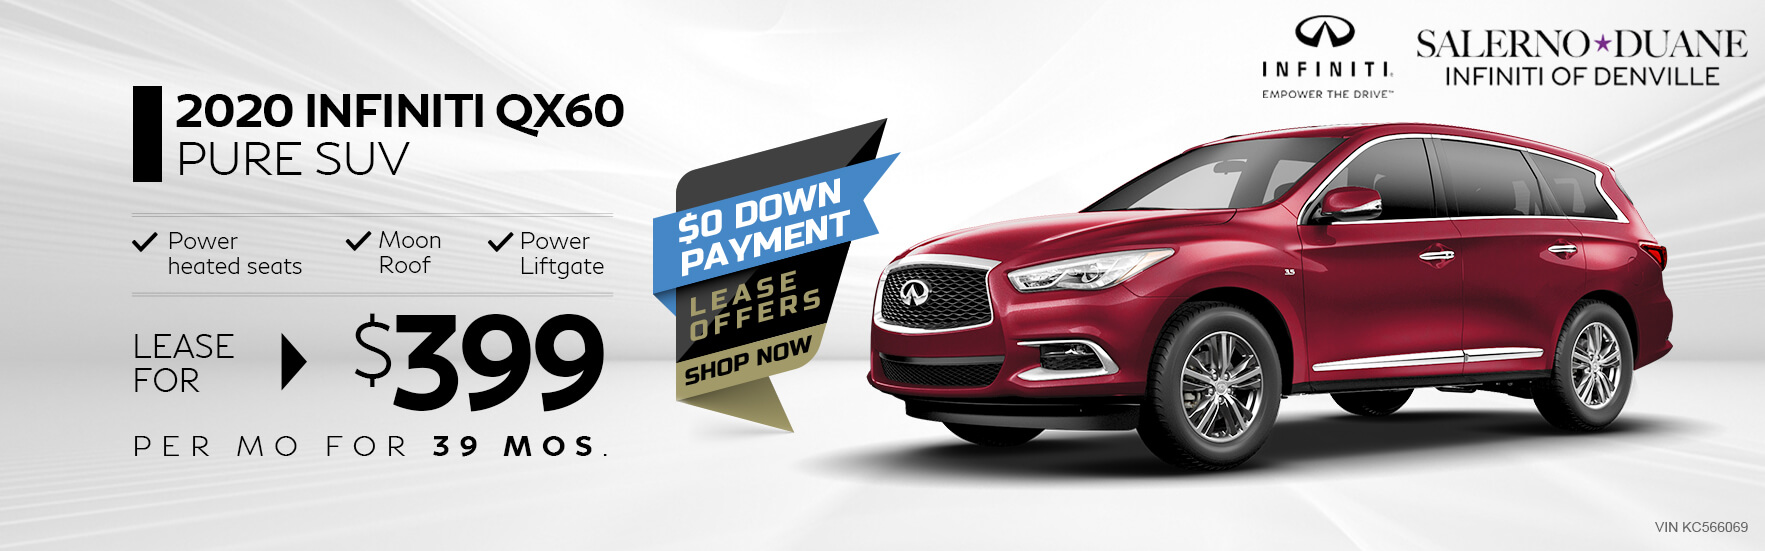 QX60 - Lease for 399